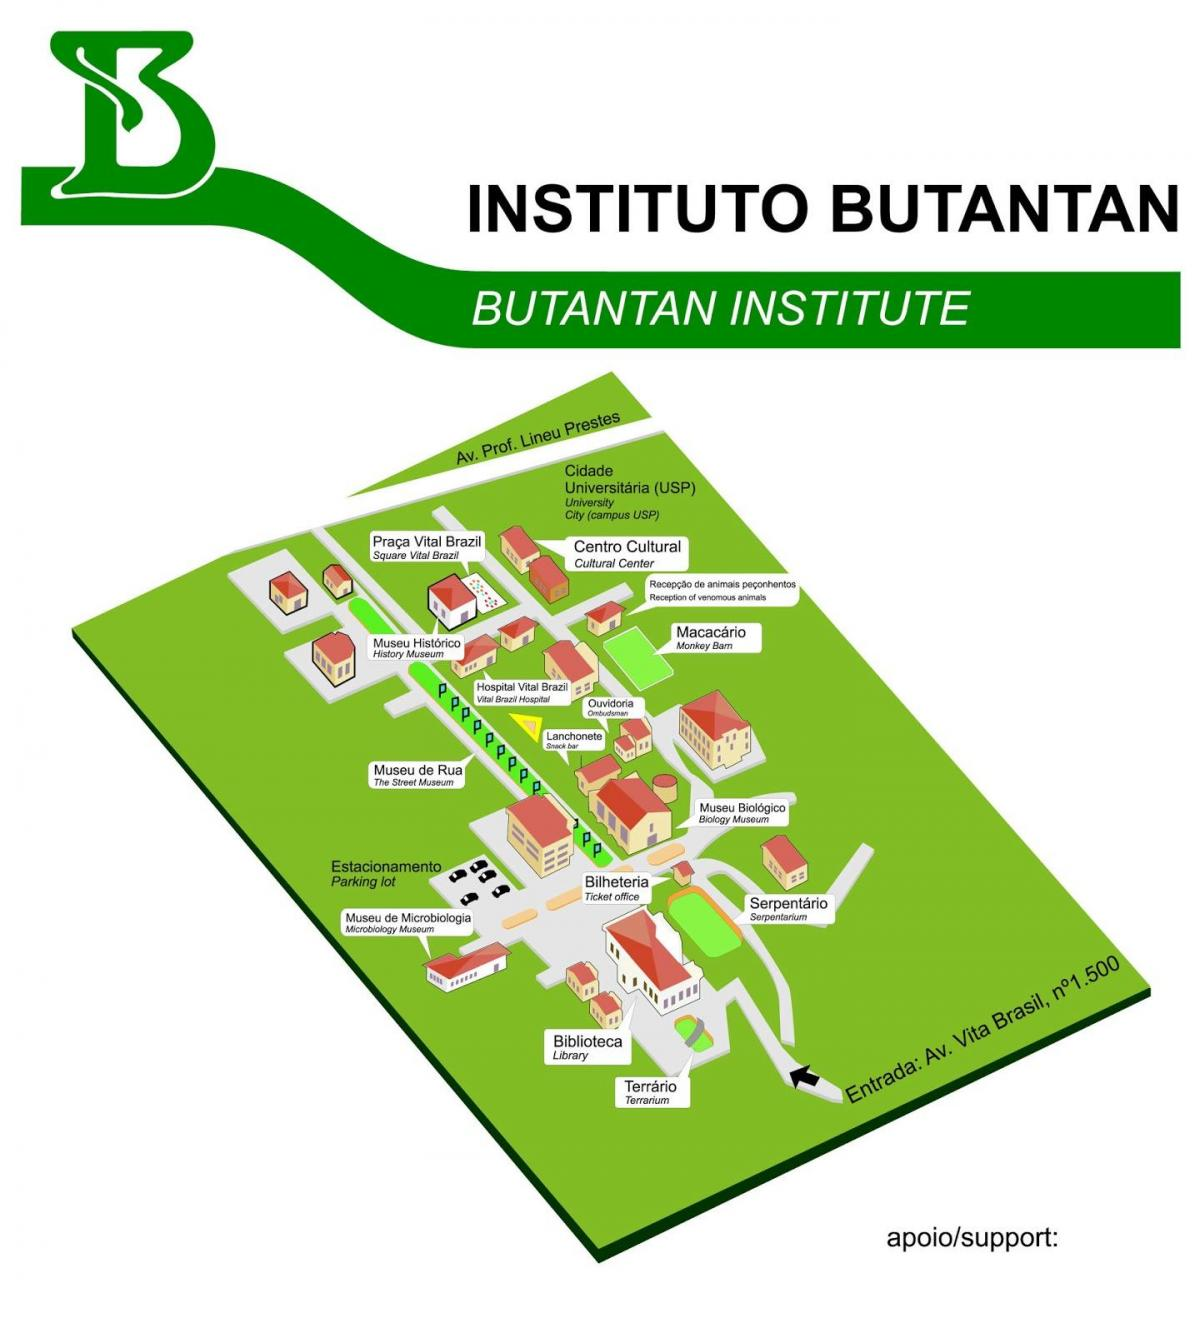 Map of institute Butantan